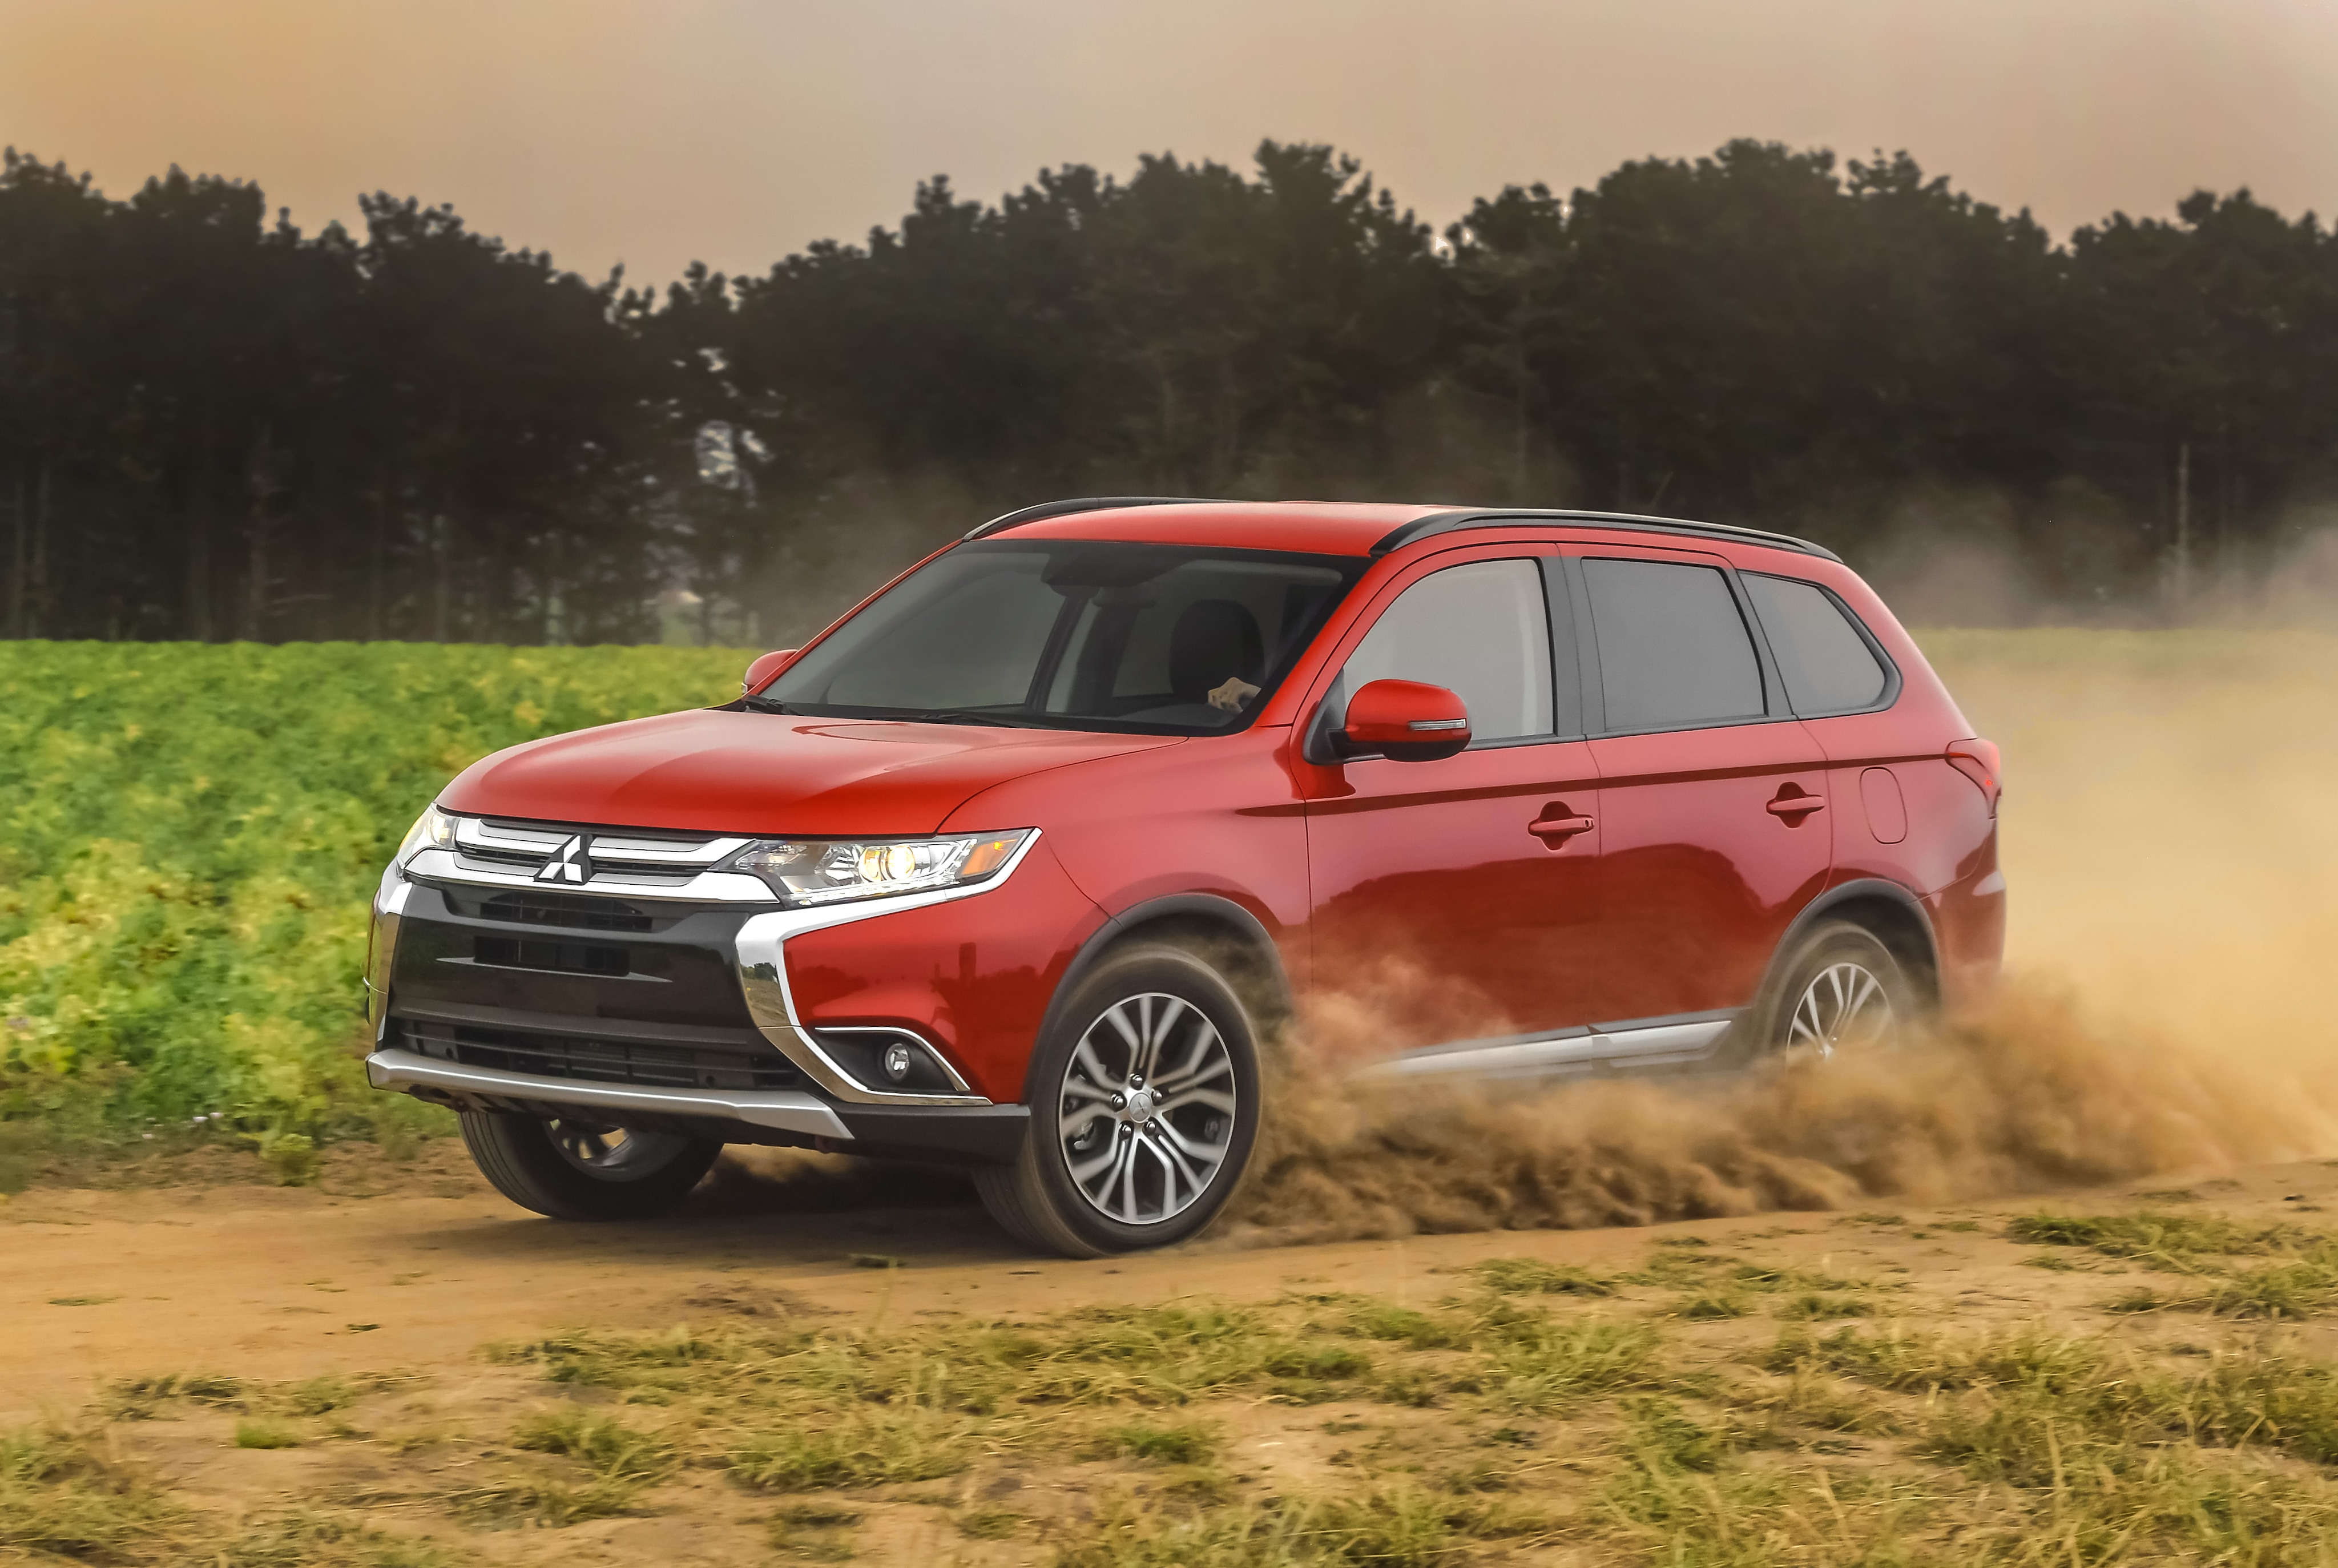 houston west htm katy new hub mitsubishi dealership in get tx outlander directions